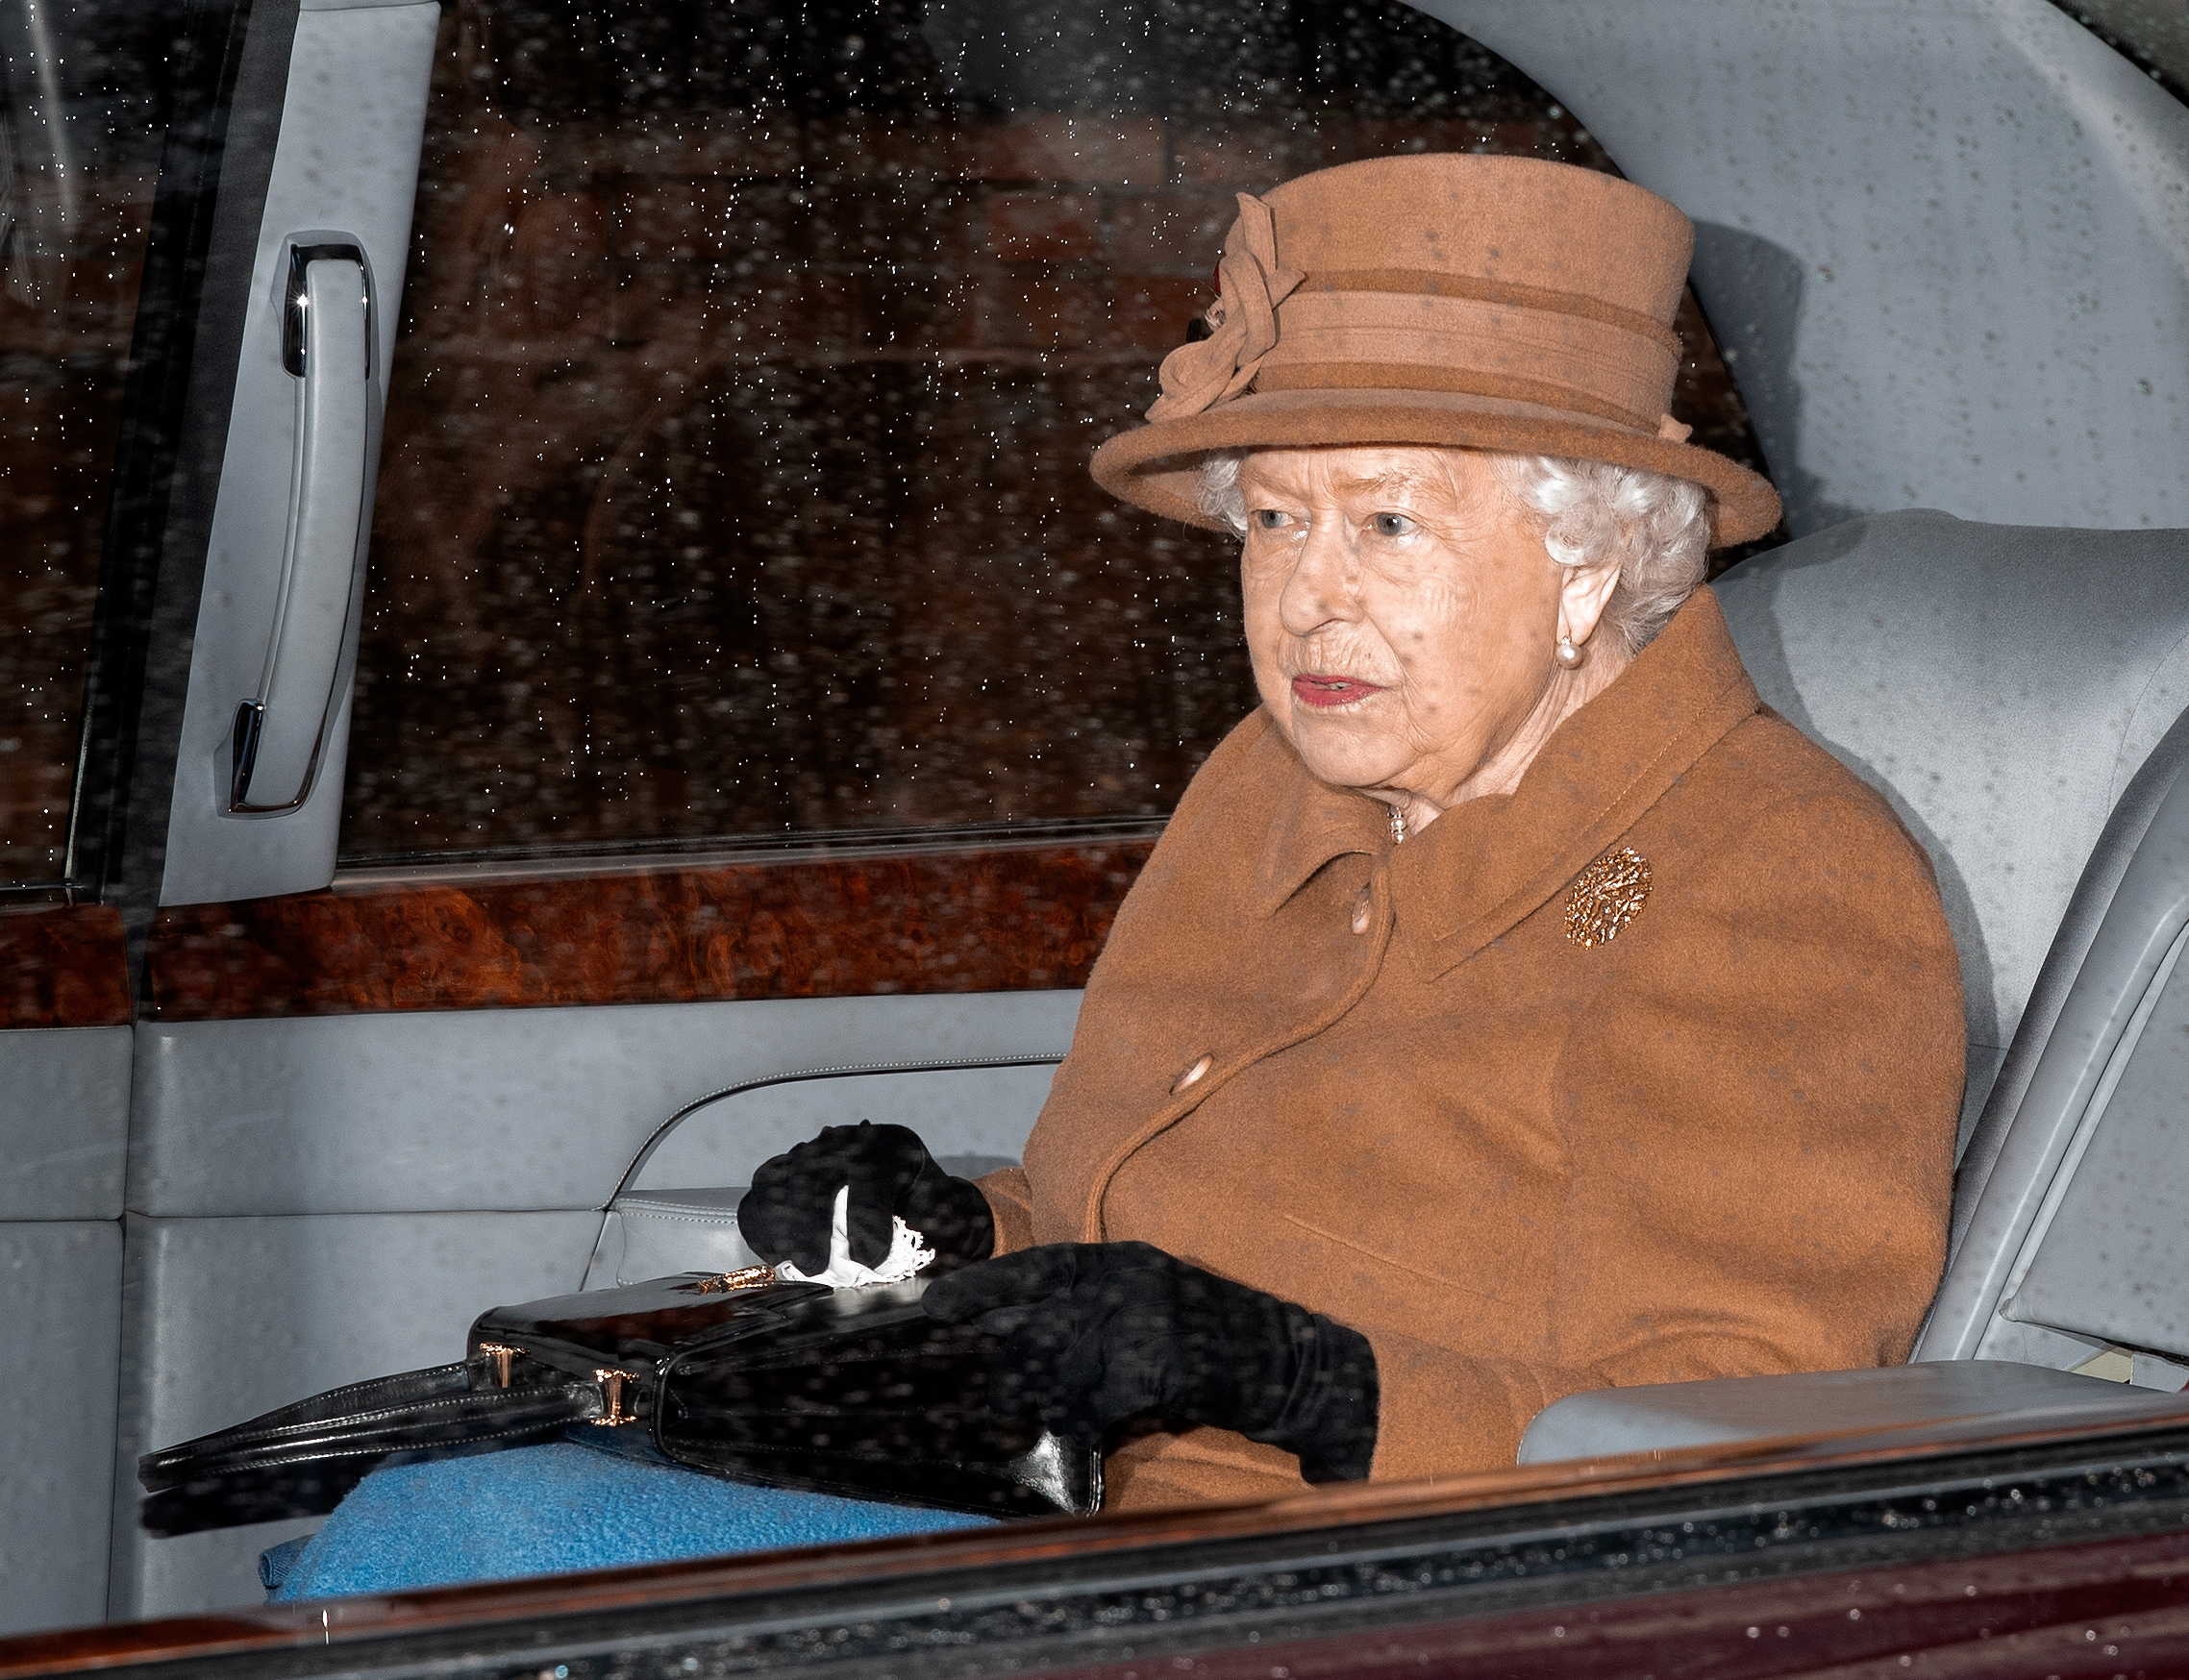 KING'S LYNN, UNITED KINGDOM - JANUARY 12: (EMBARGOED FOR PUBLICATION IN UK NEWSPAPERS UNTIL 24 HOURS AFTER CREATE DATE AND TIME) Queen Elizabeth II departs in her Bentley car after attending Sunday service at the Church of St Mary Magdalene on the Sandringham estate on January 12, 2020 in King's Lynn, England. (Photo by Max Mumby/Indigo/Getty Images)